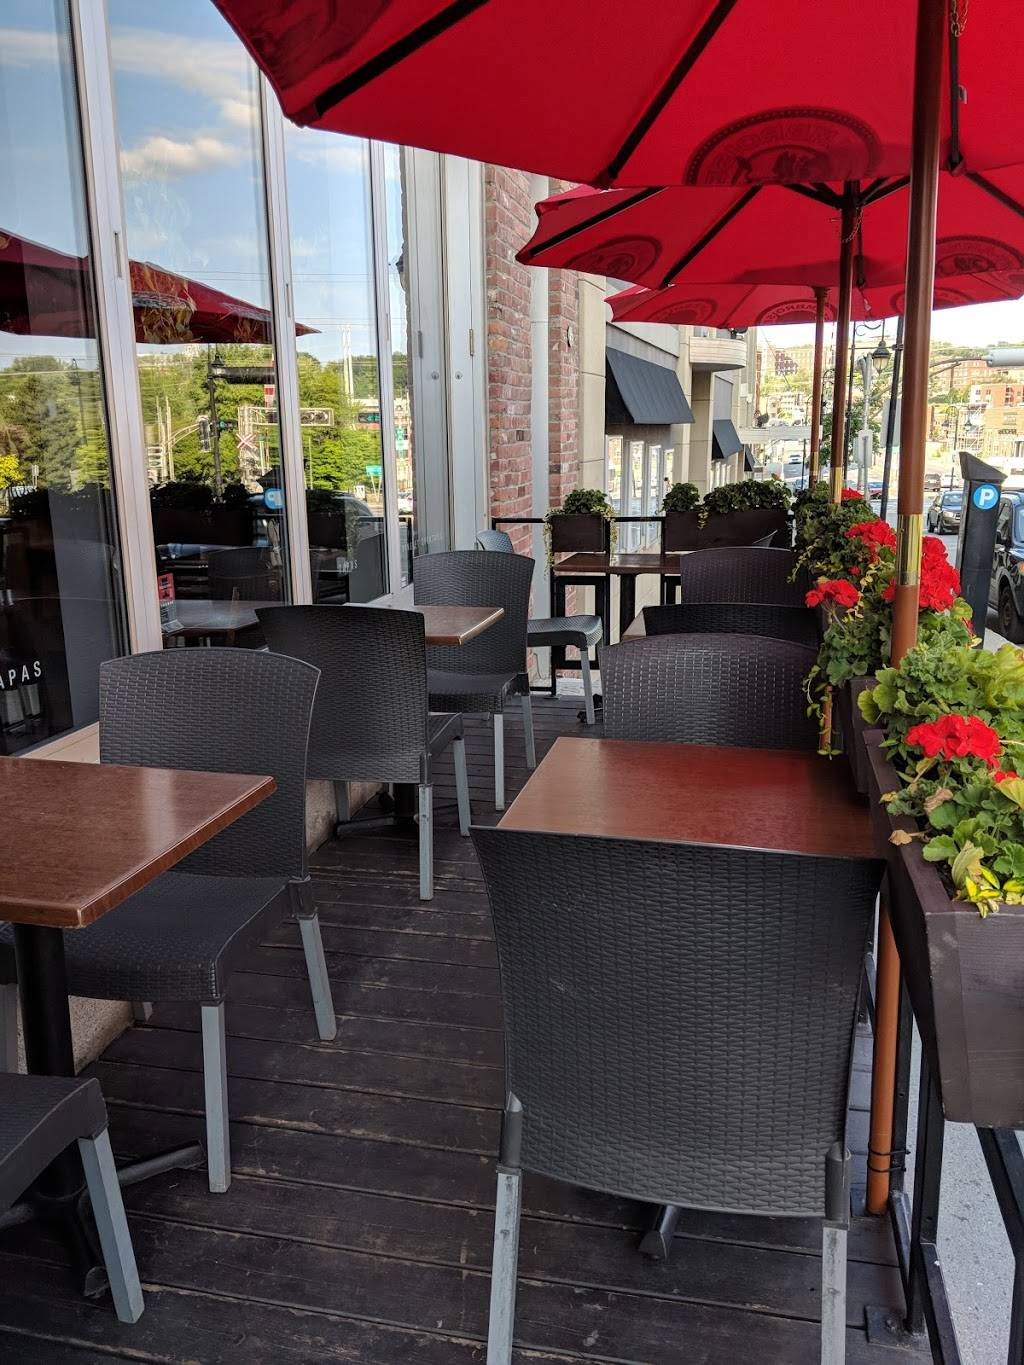 Tapageur | restaurant | 83 Rue King Ouest, Sherbrooke, QC J1H 1P1, Canada | 8198235444 OR +1 819-823-5444